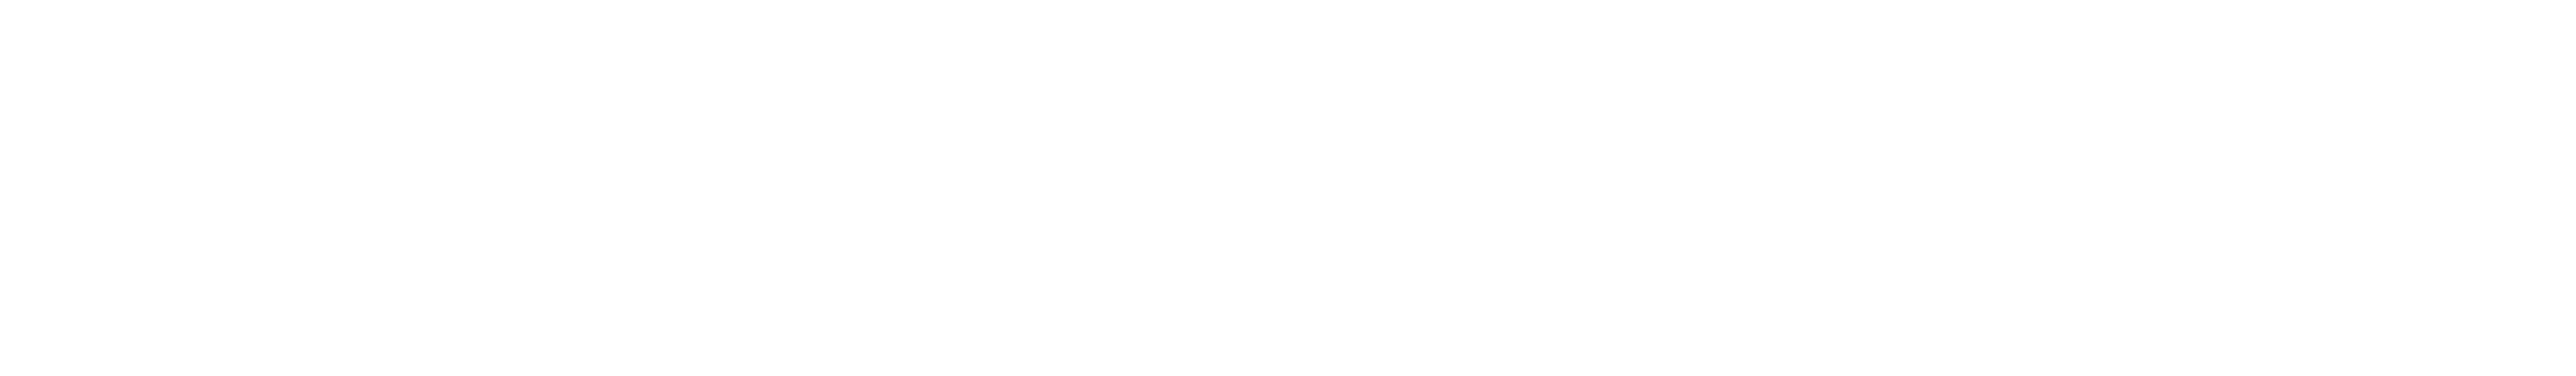 Decor png picture gallery. Oval clipart lace